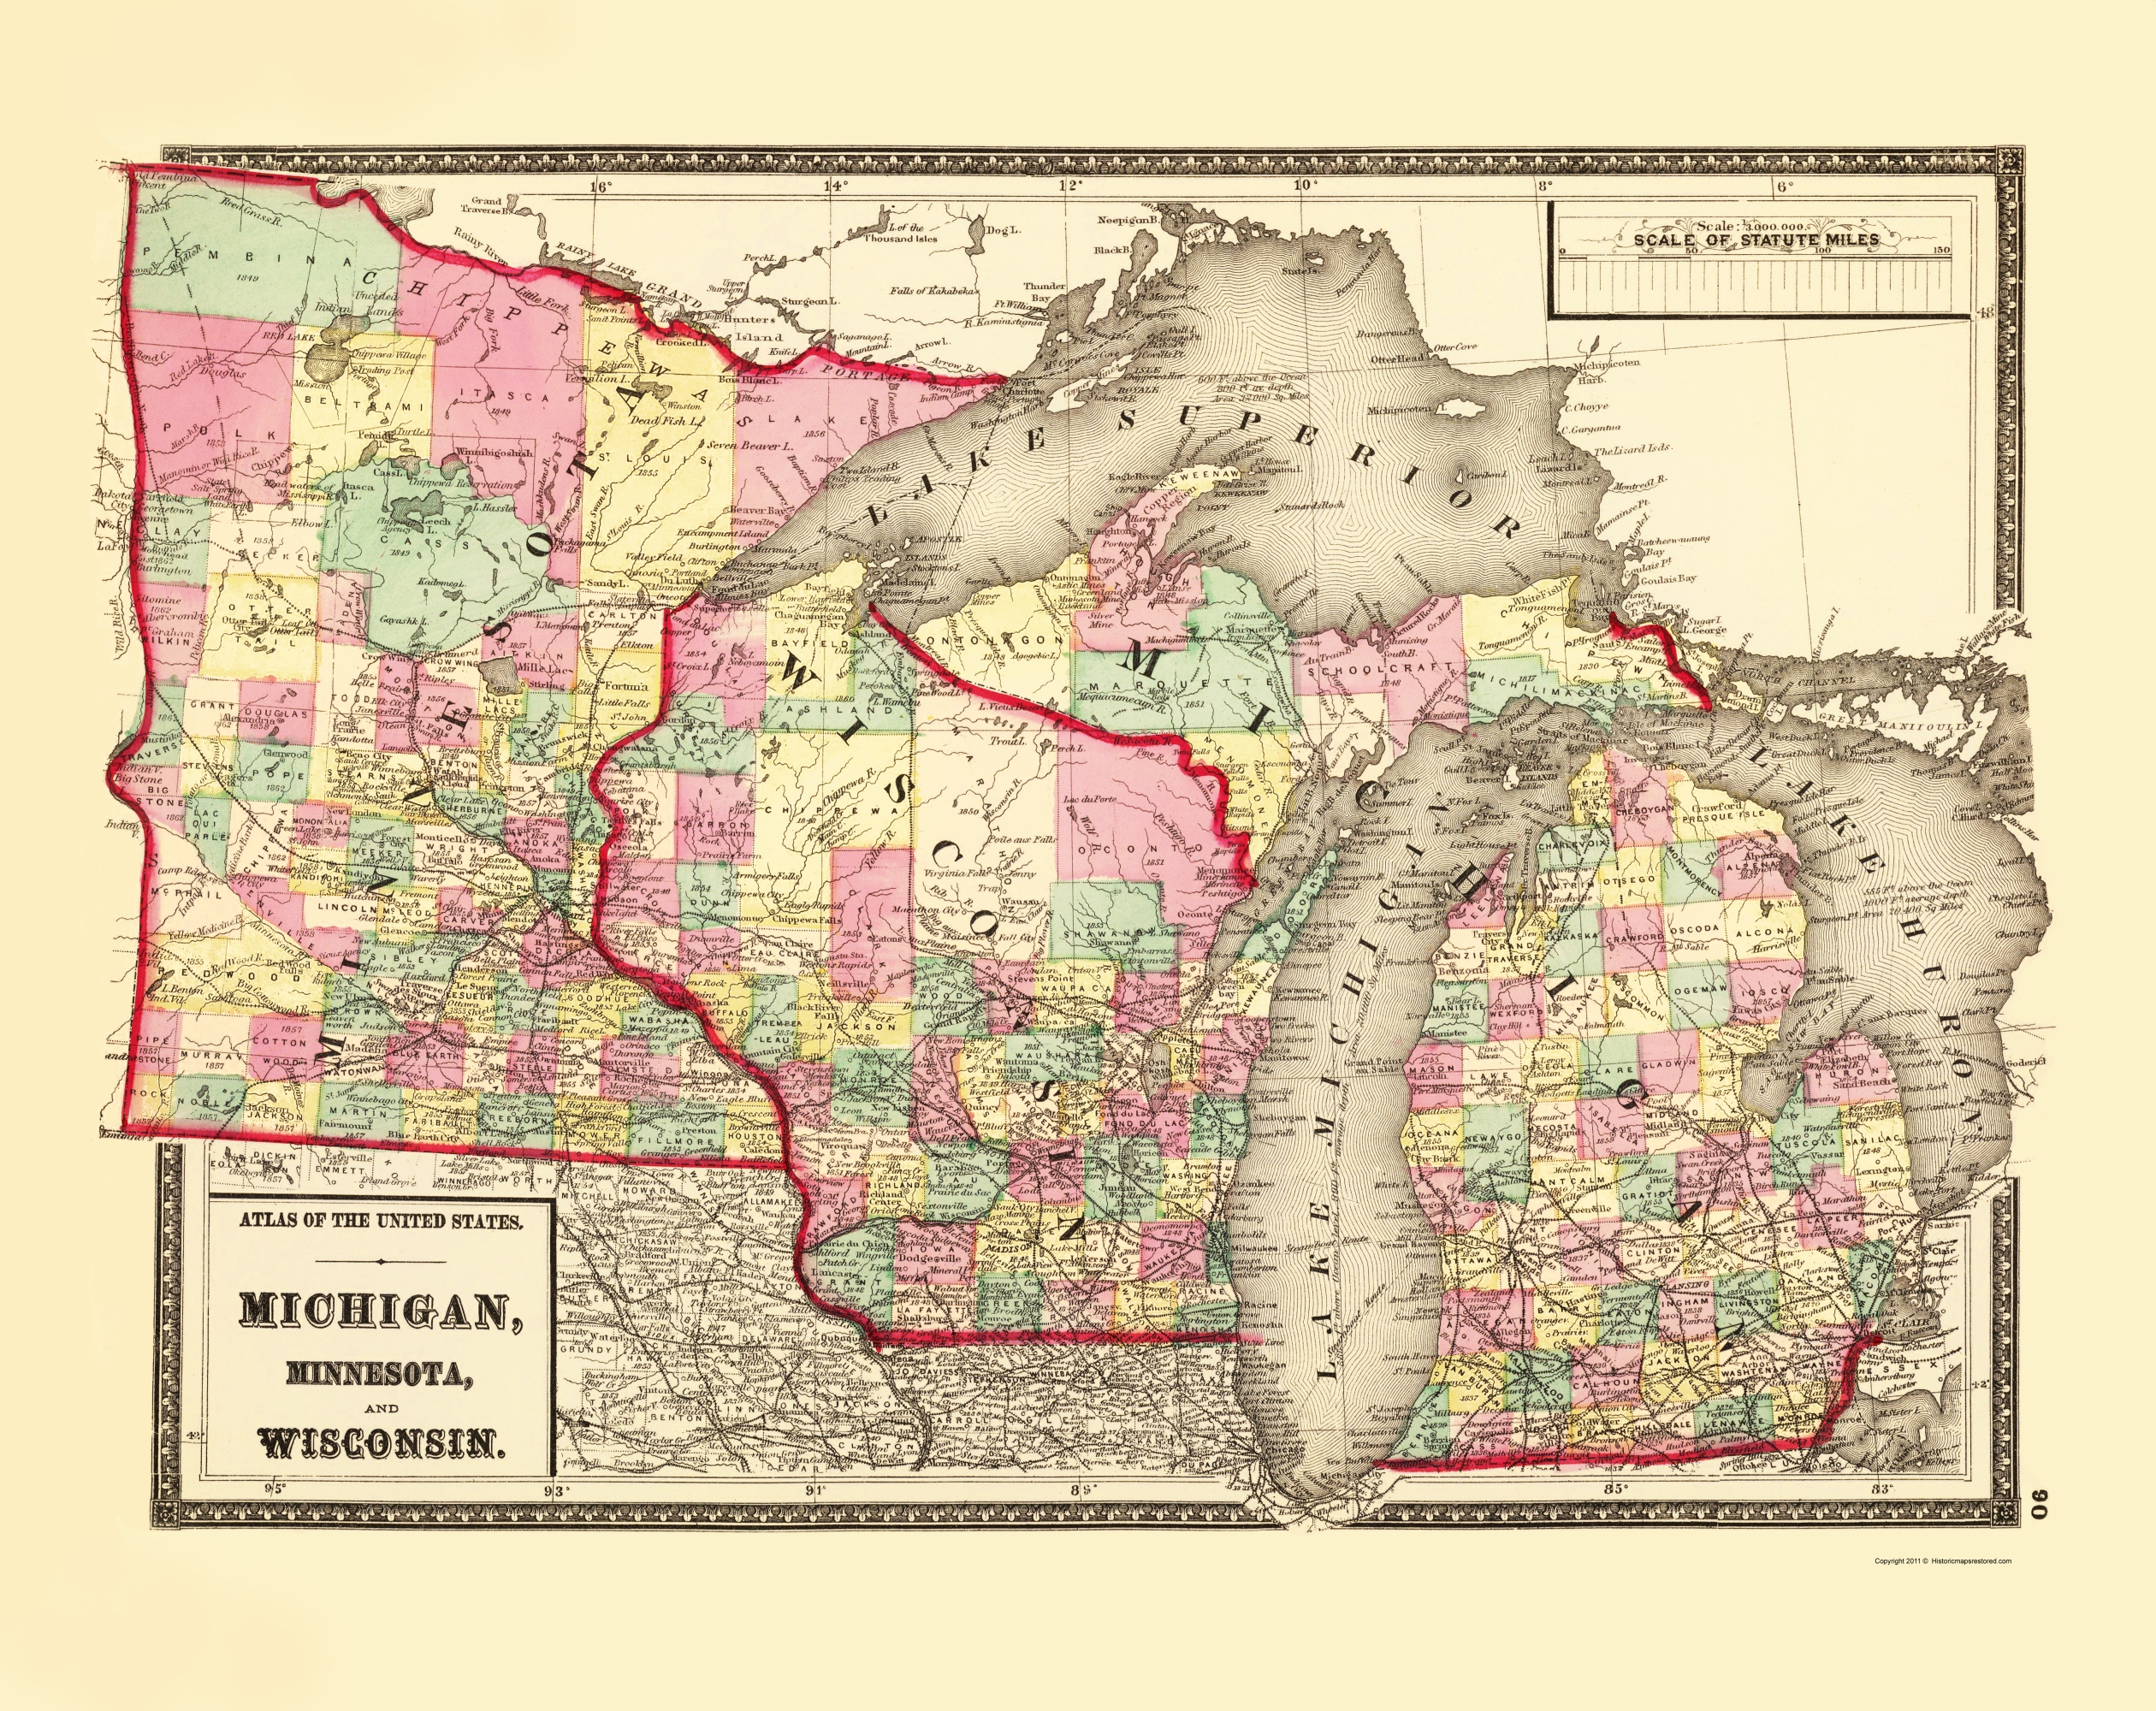 Old State Map Michigan Minnesota Wisconsin - Map of wisconsin and minnesota